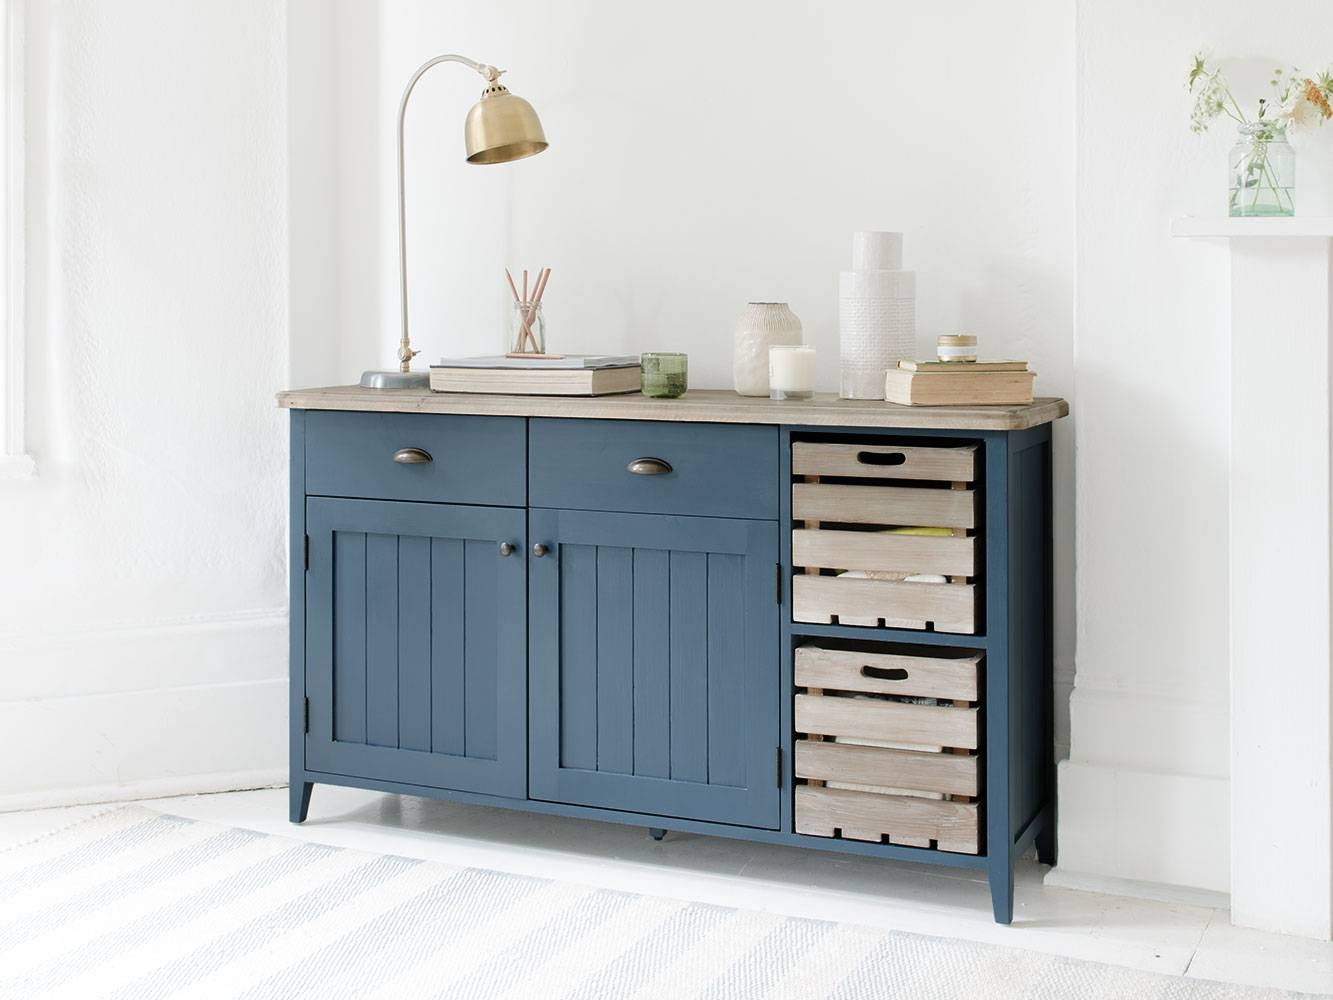 Cidre Sideboard In Inky Blue   Painted Sideboard   Loaf With Painted Sideboards (View 6 of 15)